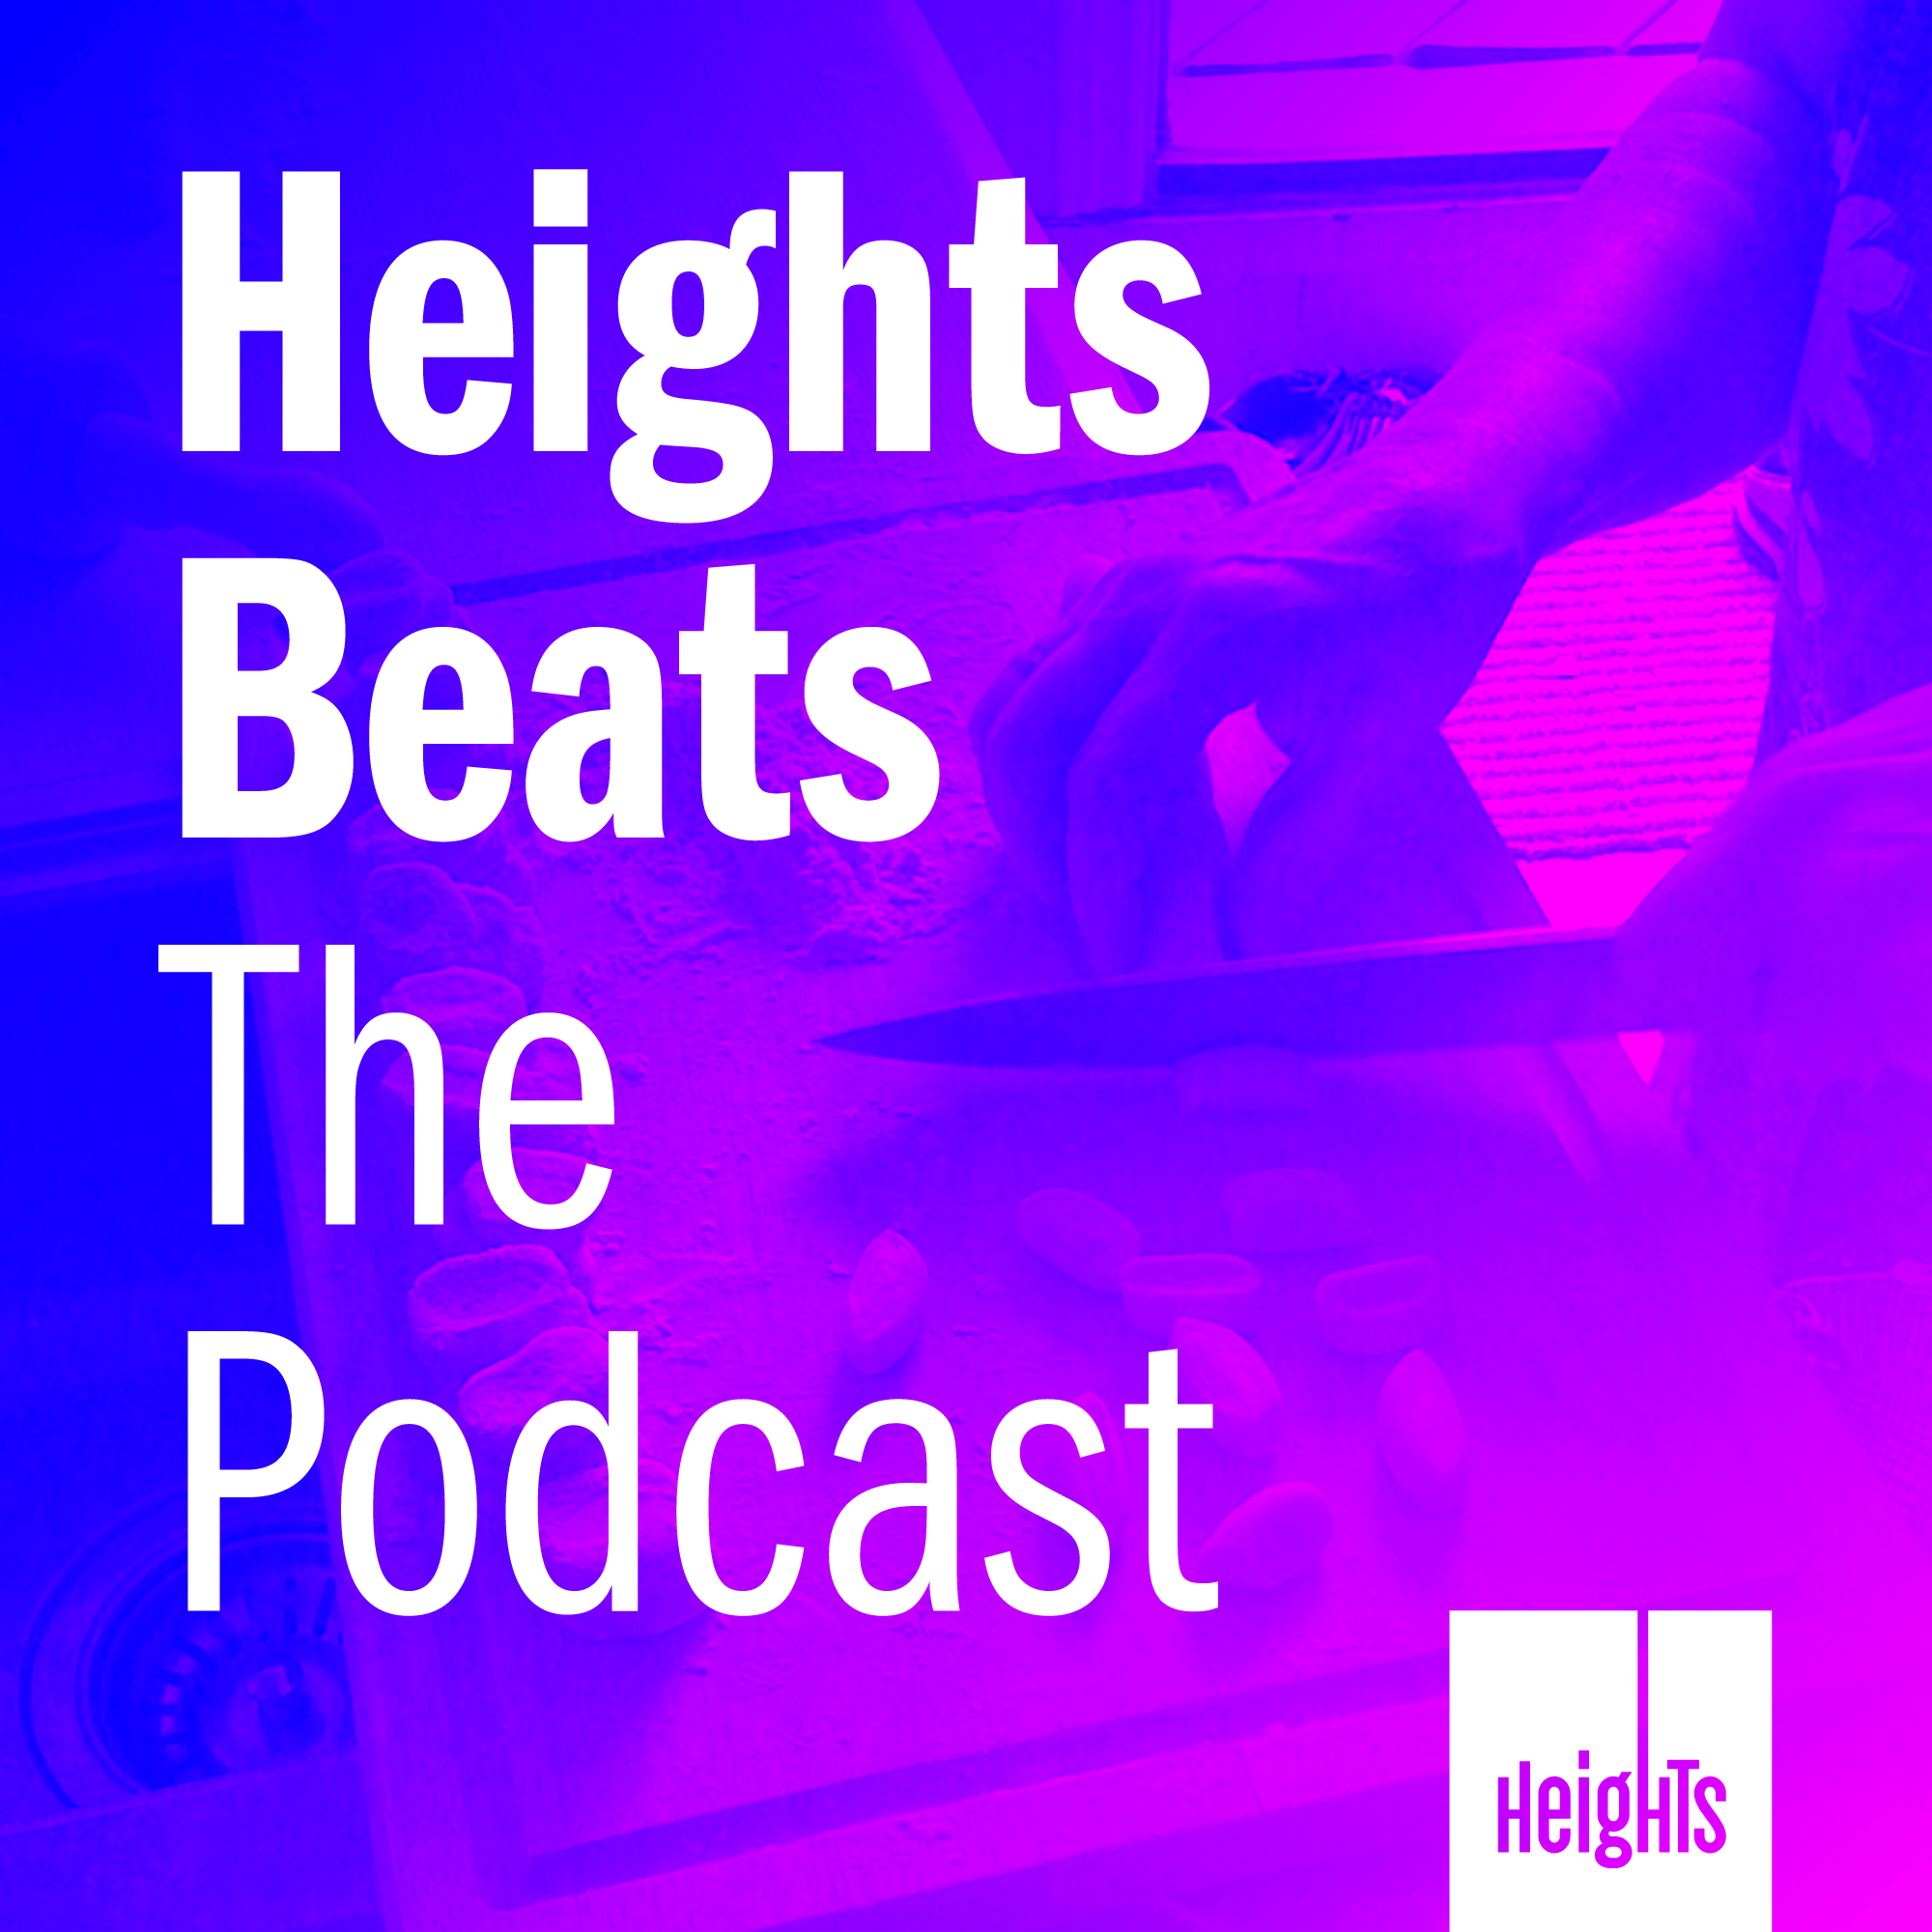 Heights Beats: The Podcast